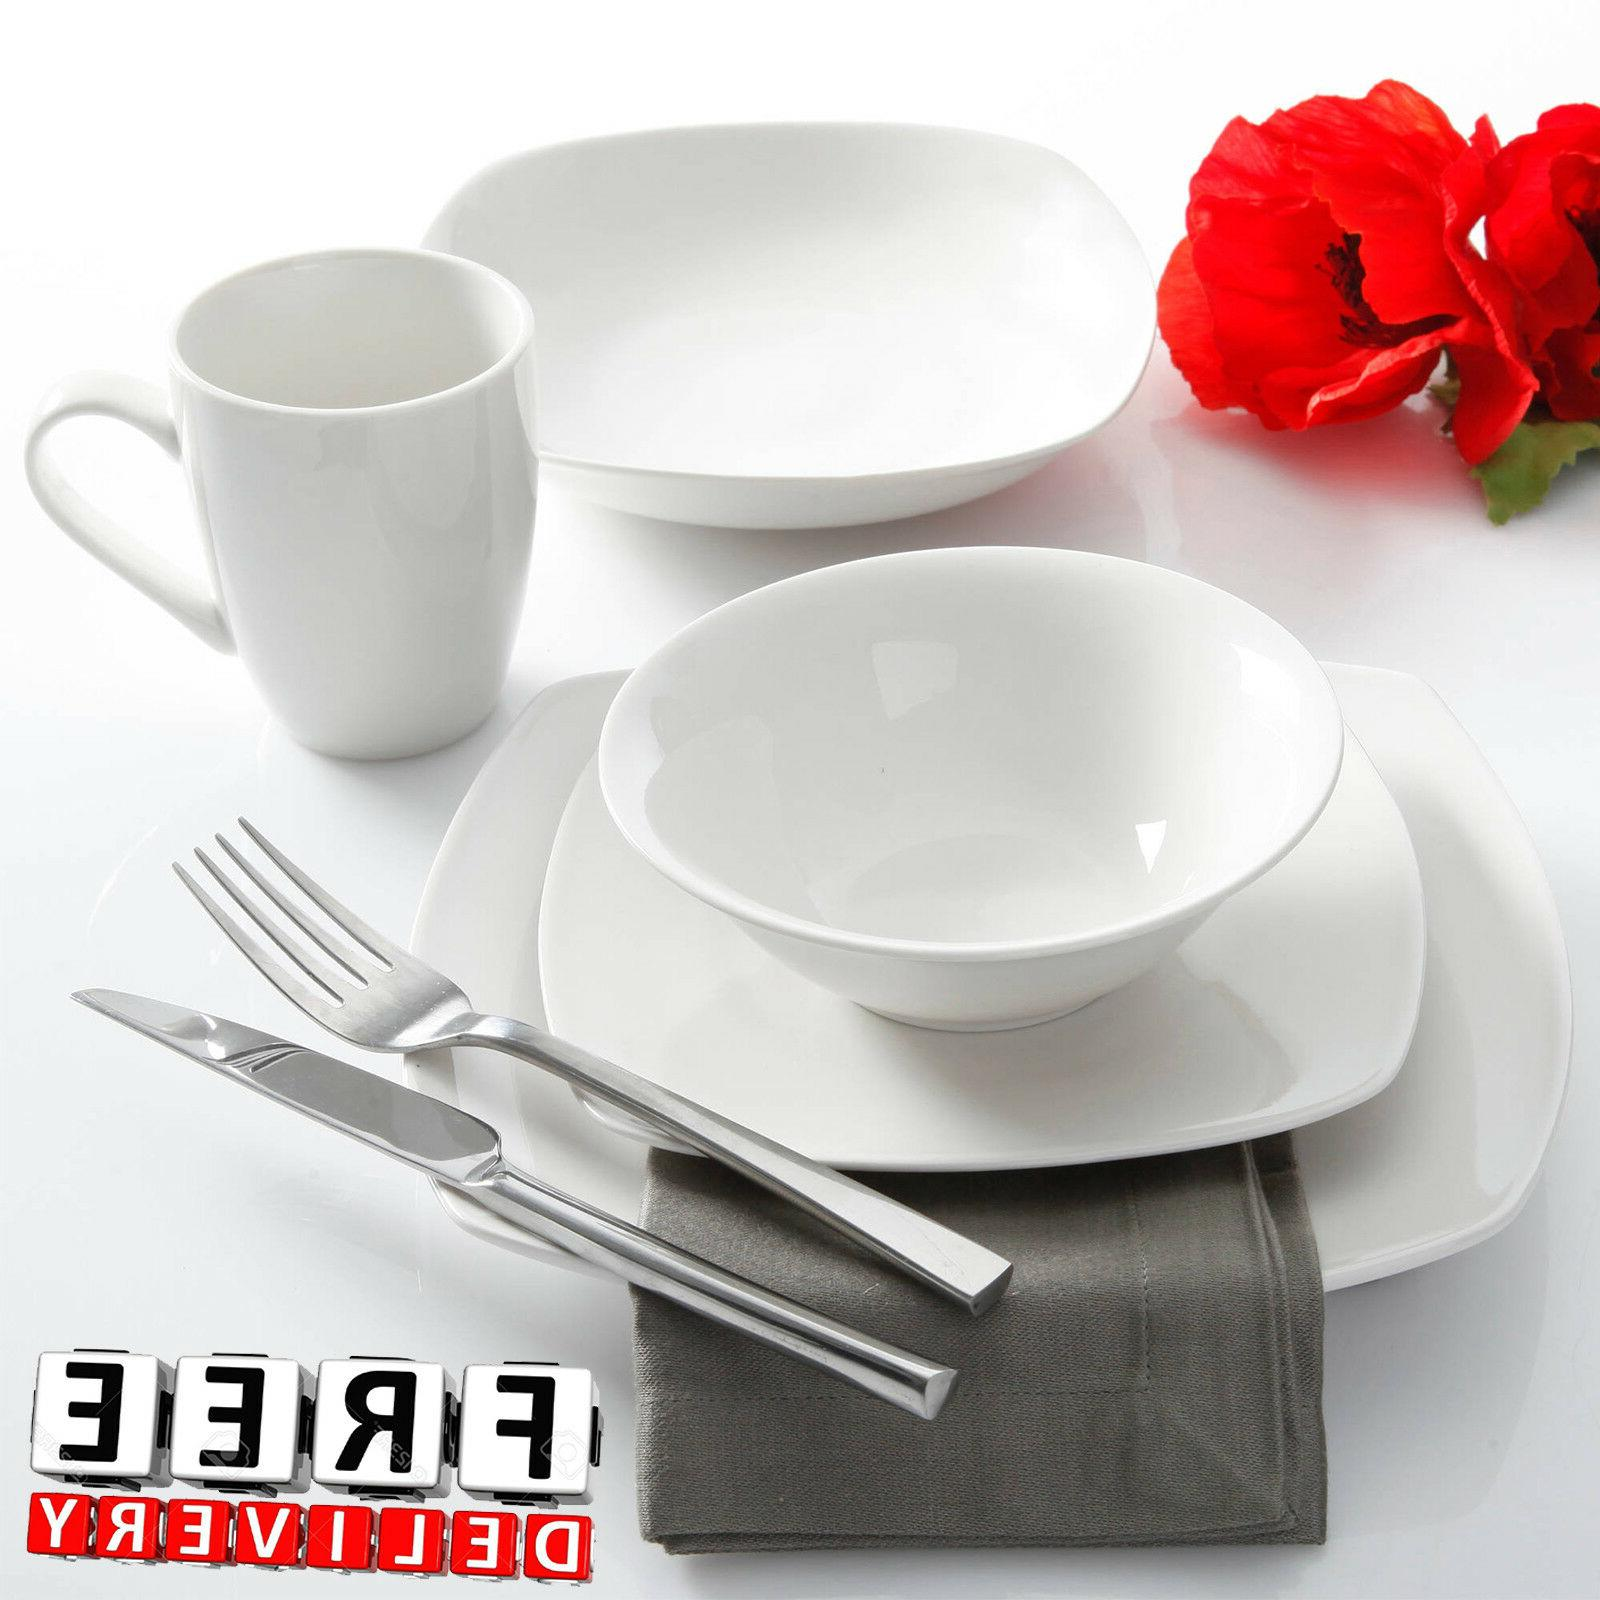 Porcelain Dinnerware Set For 6 30Pc White Round Kitchen Plat